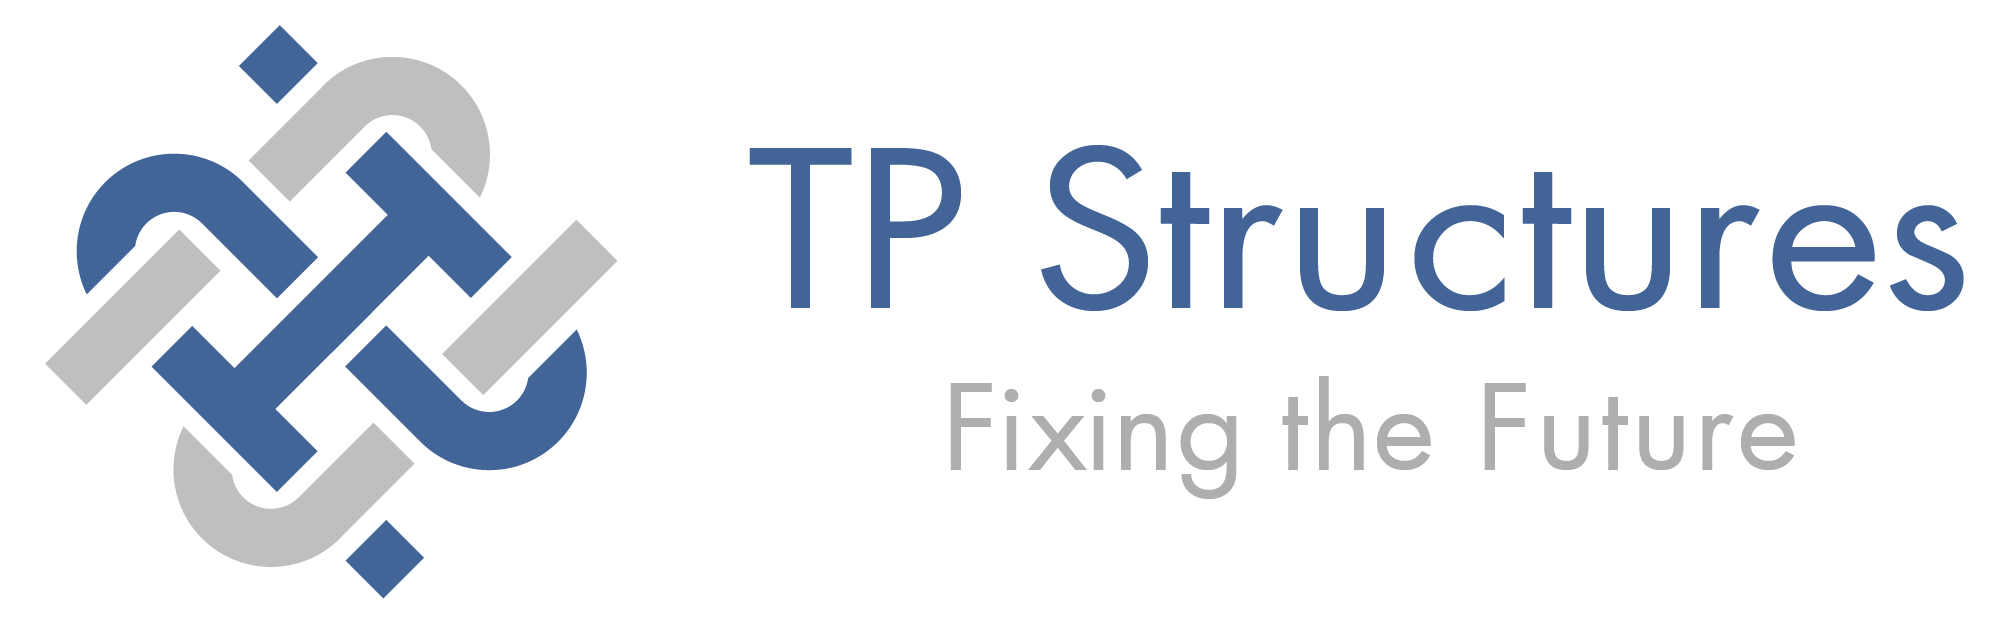 TP STRUCTURES